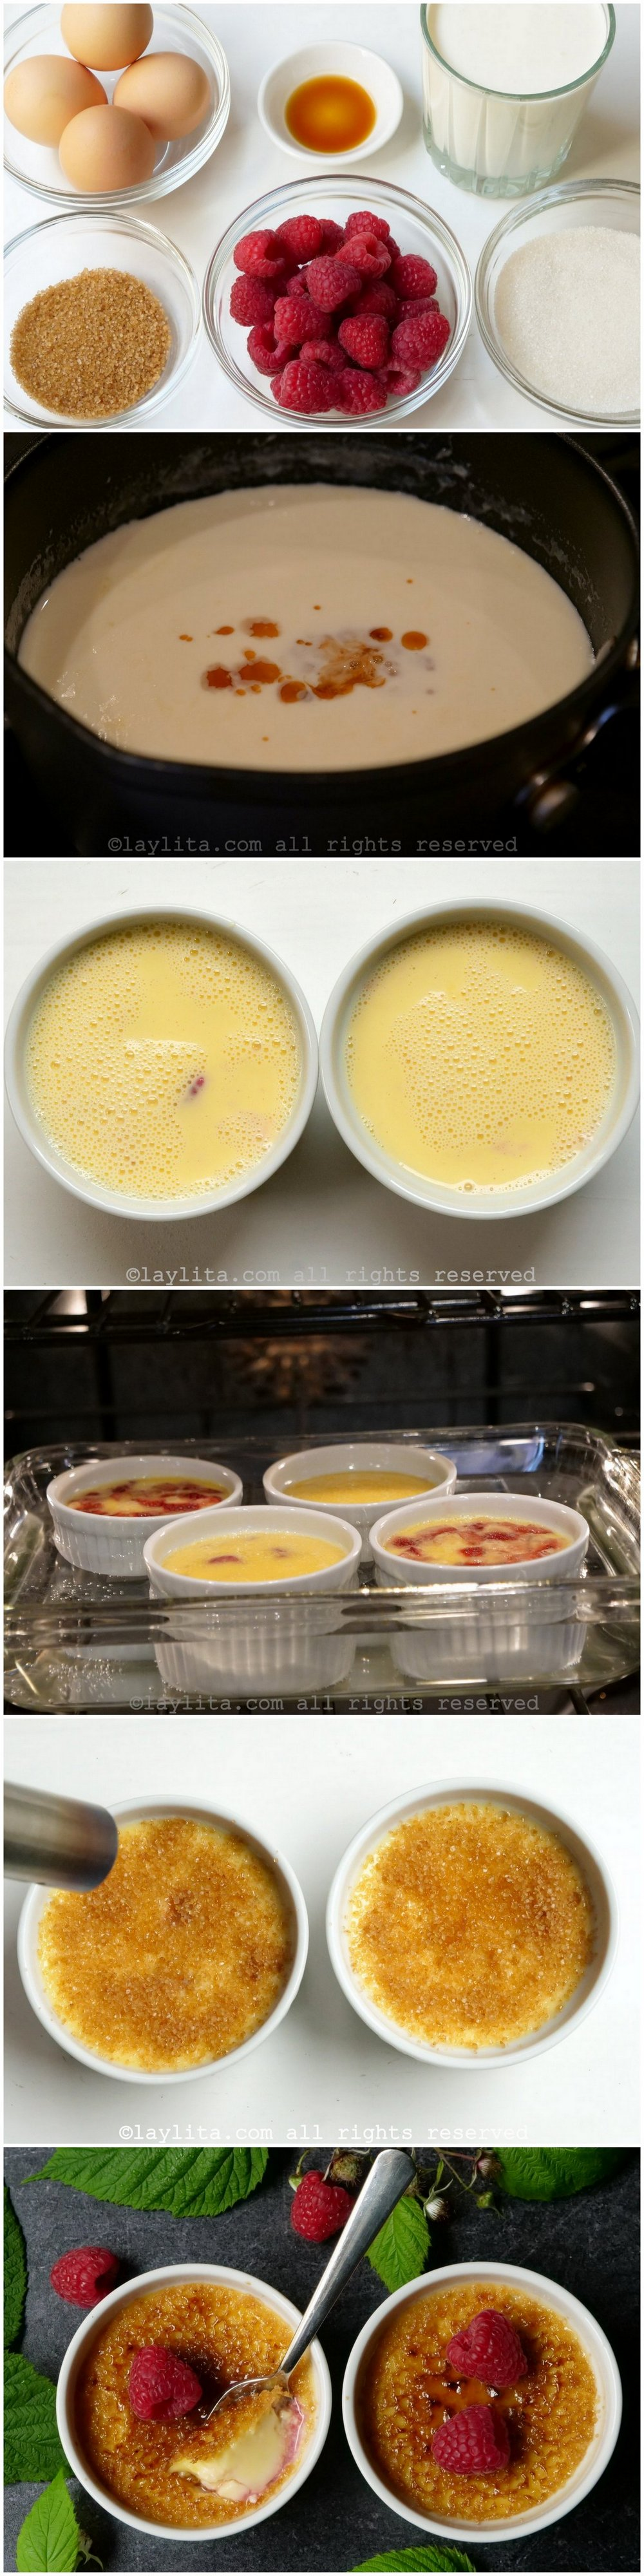 Raspberry creme brulee preparation